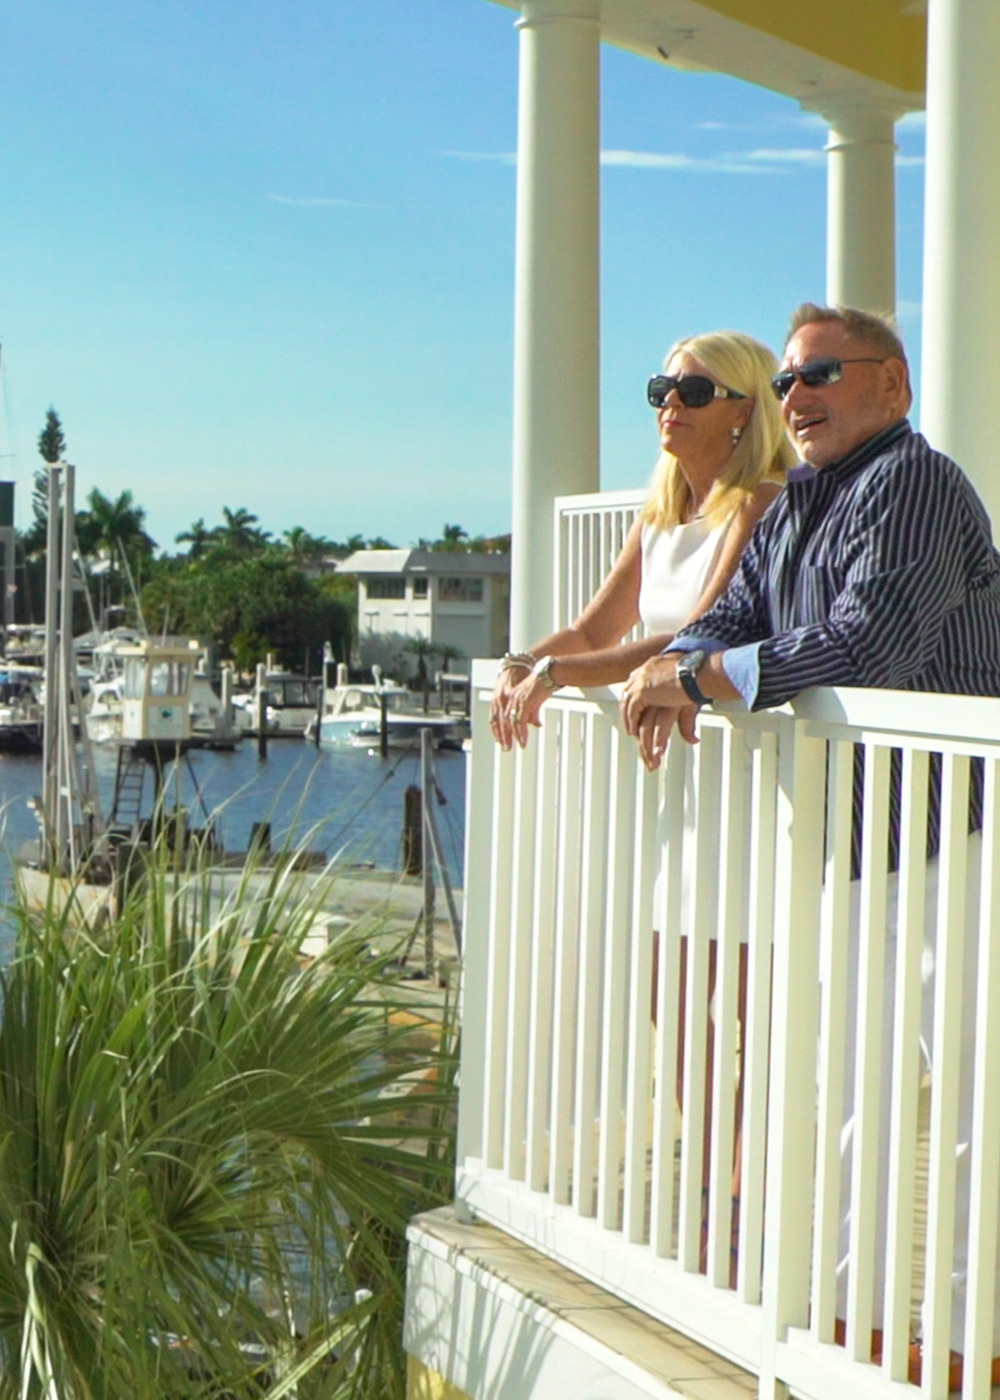 Steve Wedel with his wife in Naples, Florida.